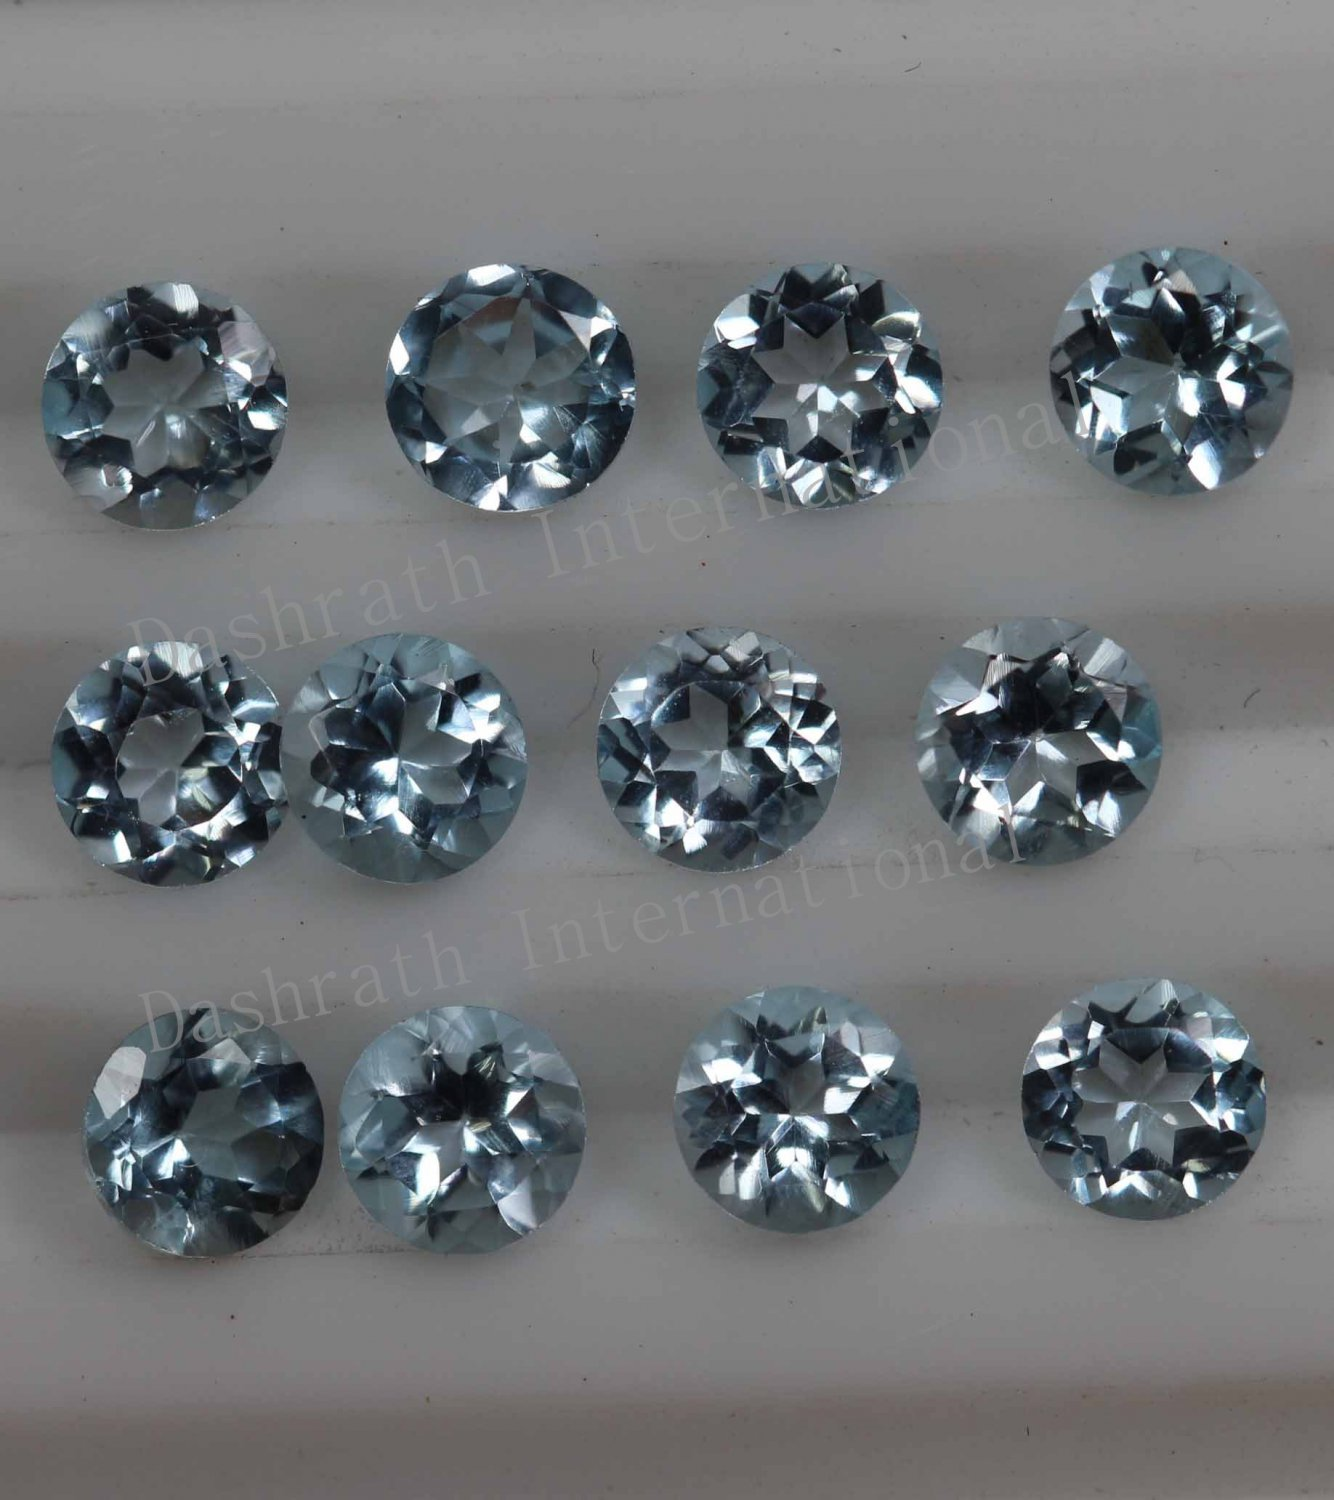 5mmNatural Sky Blue Topaz Faceted Cut Round 5 Pieces Lot Blue Color  Top Quality Loose Gemstone